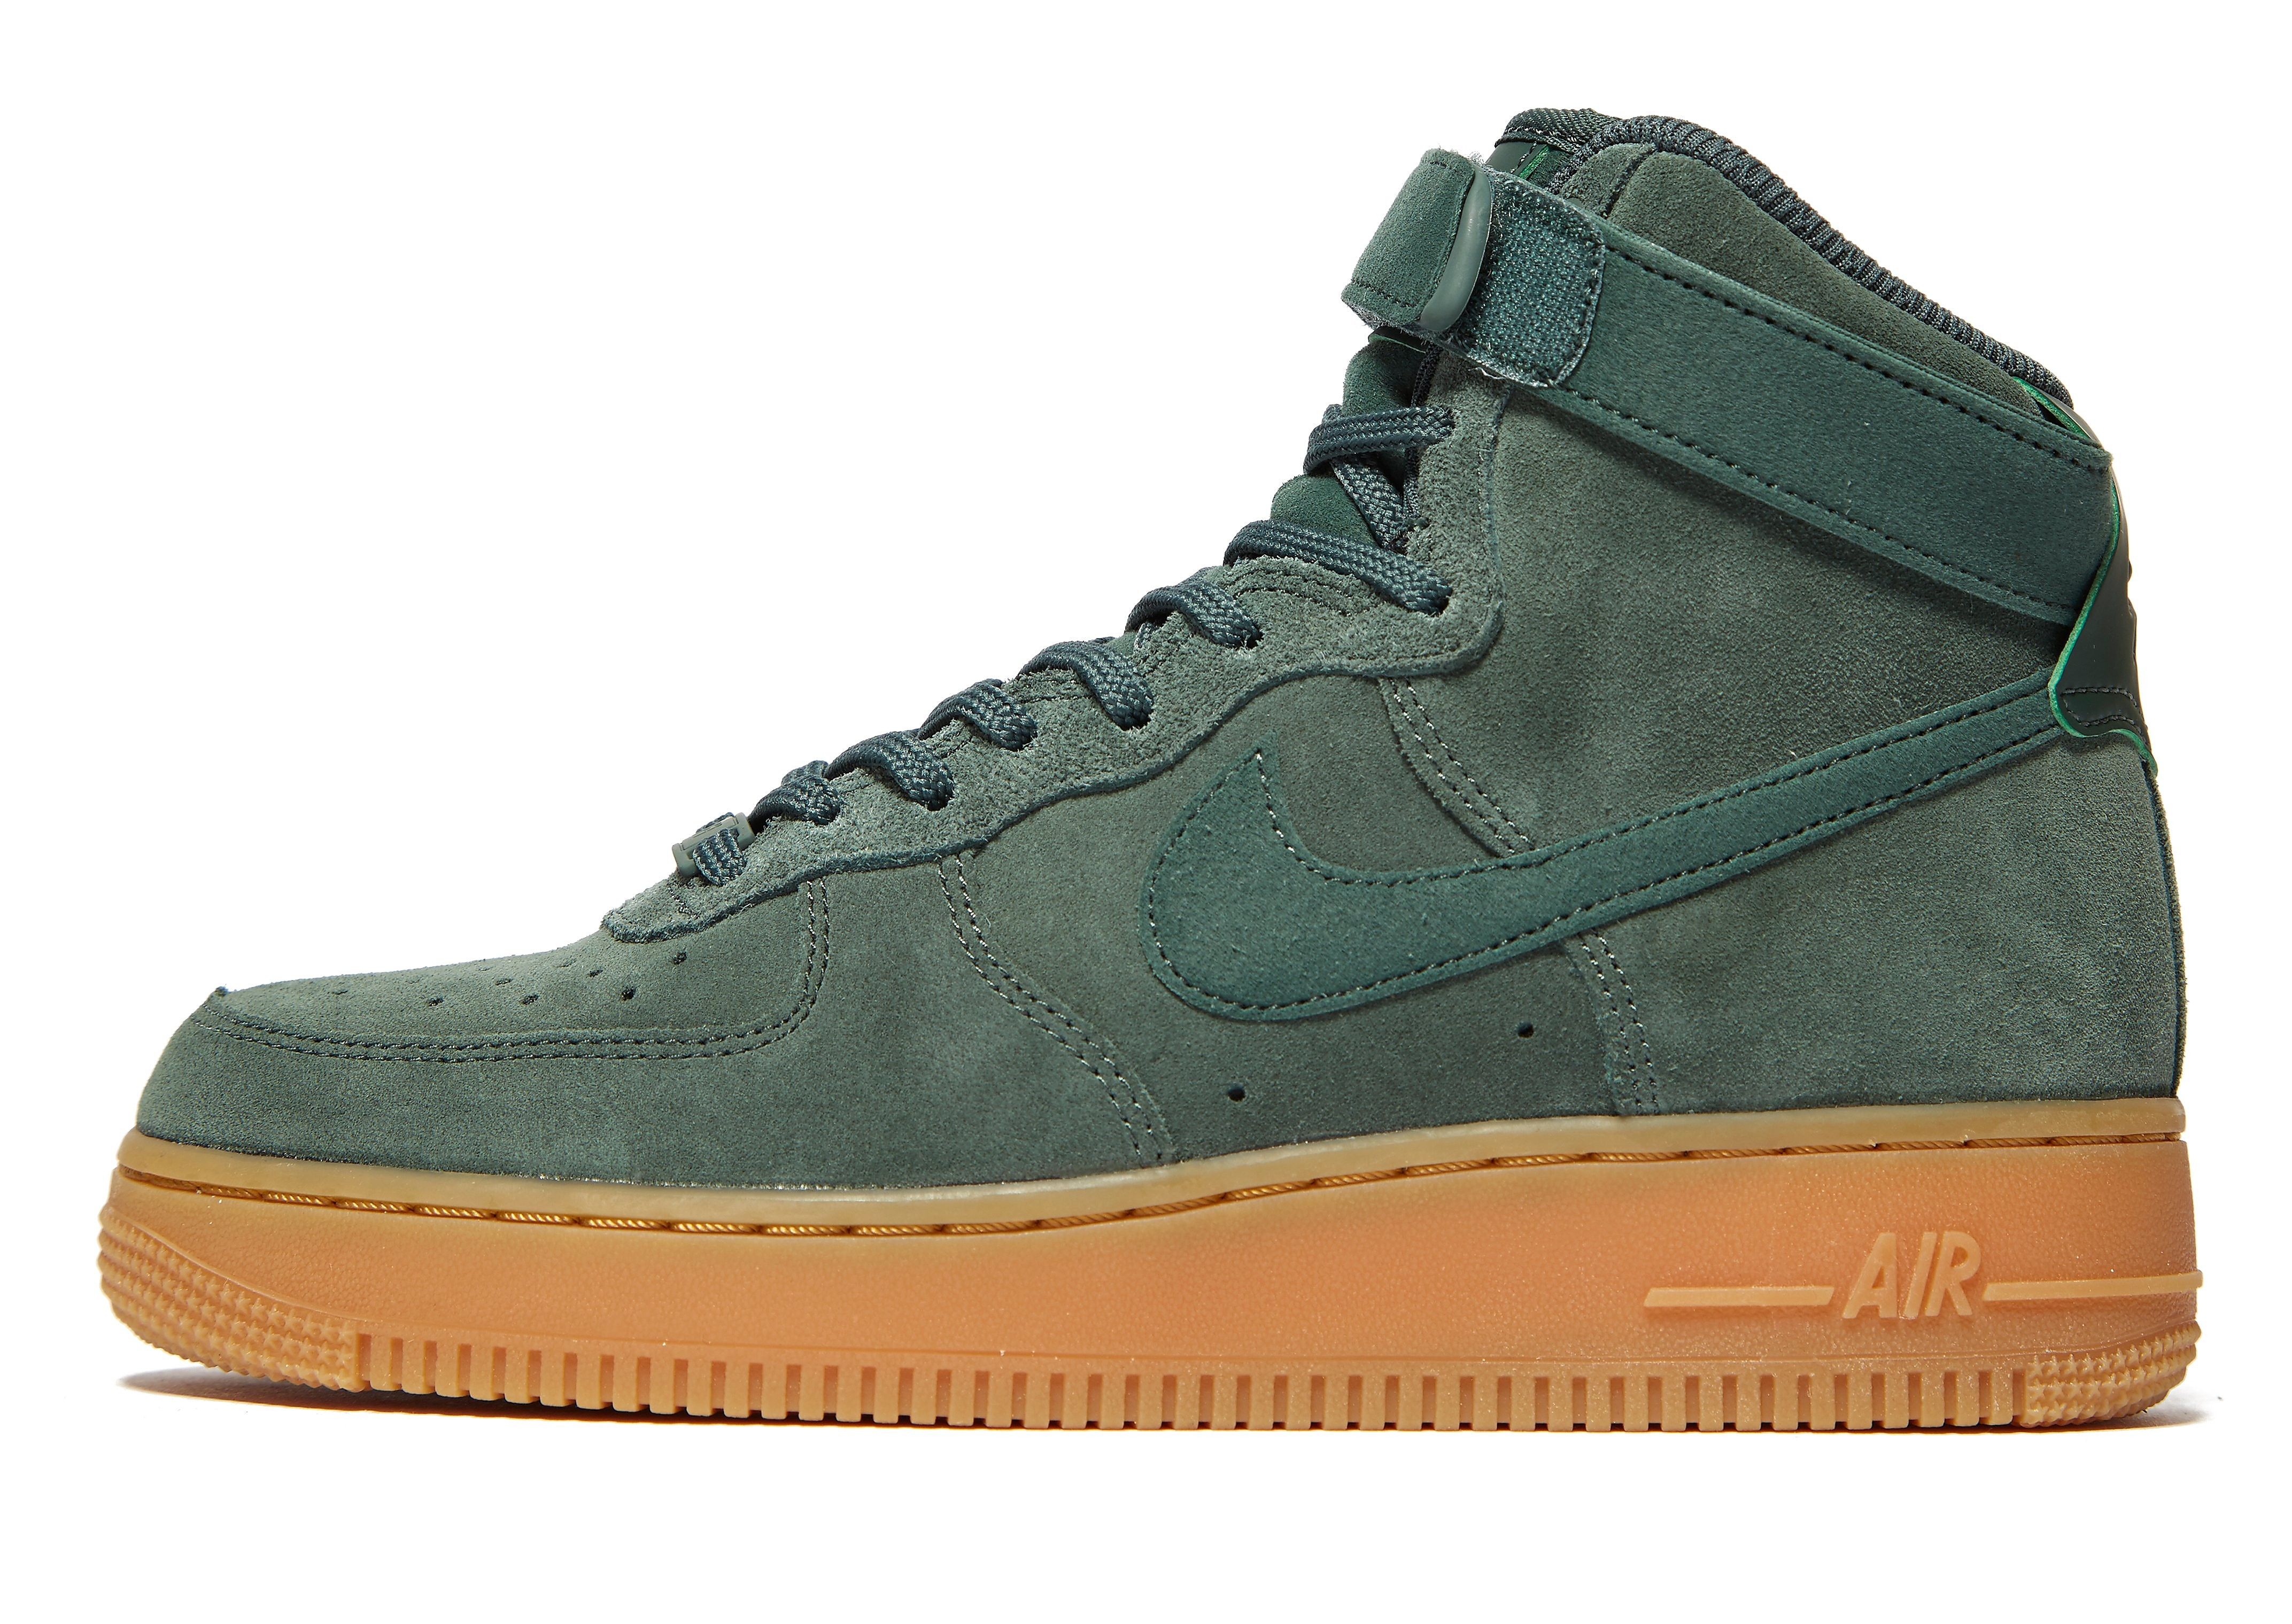 Nike Air Force 1 Mid Women's